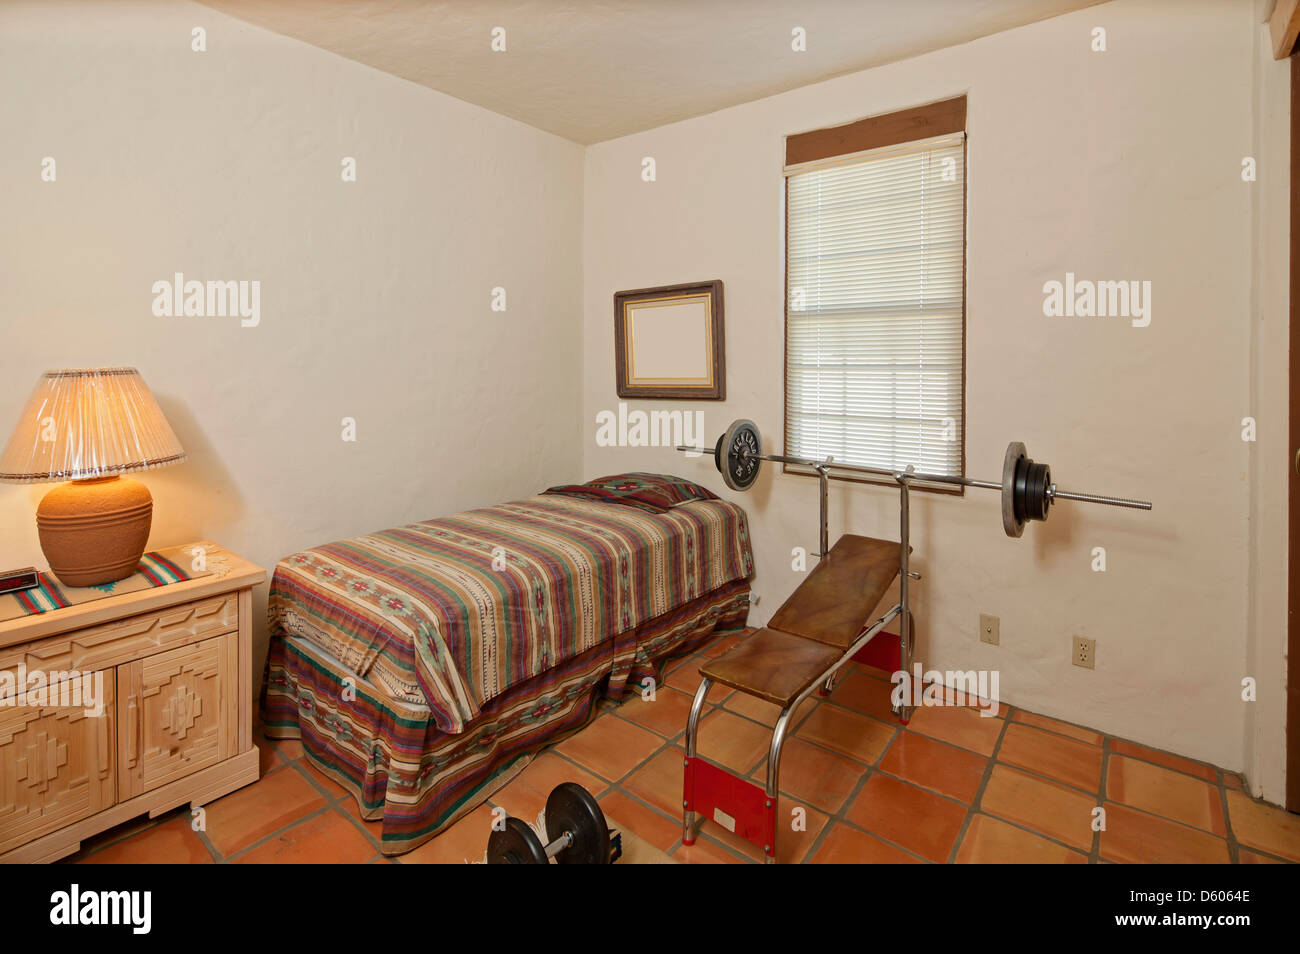 Small single bedroom with bench press weights Stock Photo ...